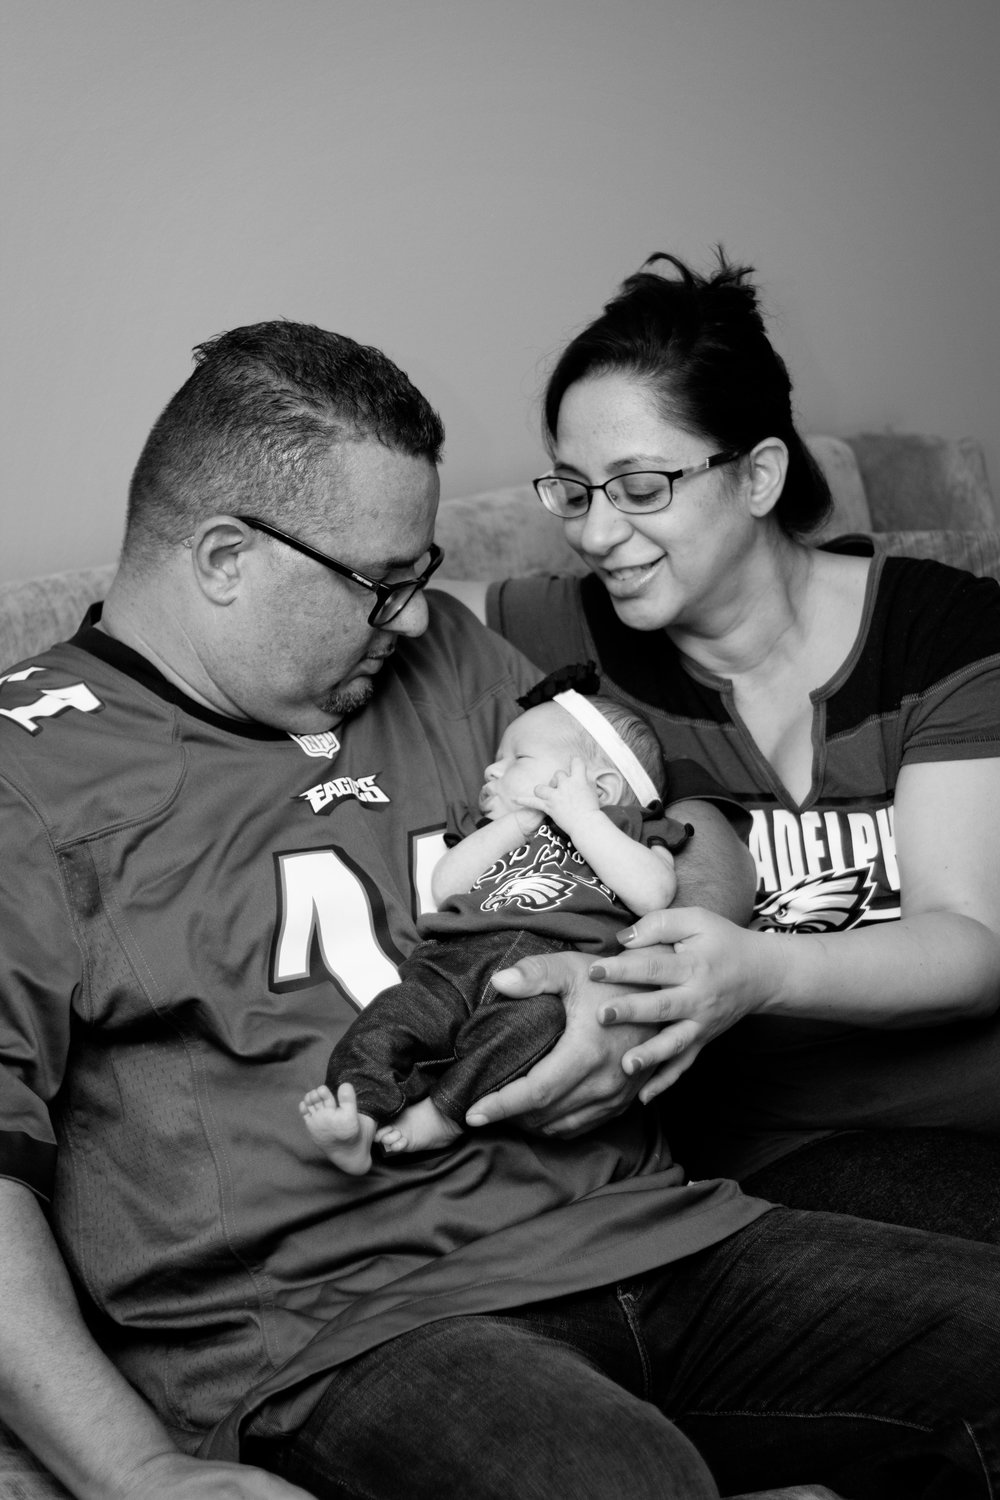 Sweet newborn baby girl session in Southern New Jersey. The sweet family of a newborn baby girl all wearing their Eagles gear. Super Bowl LII Champions!